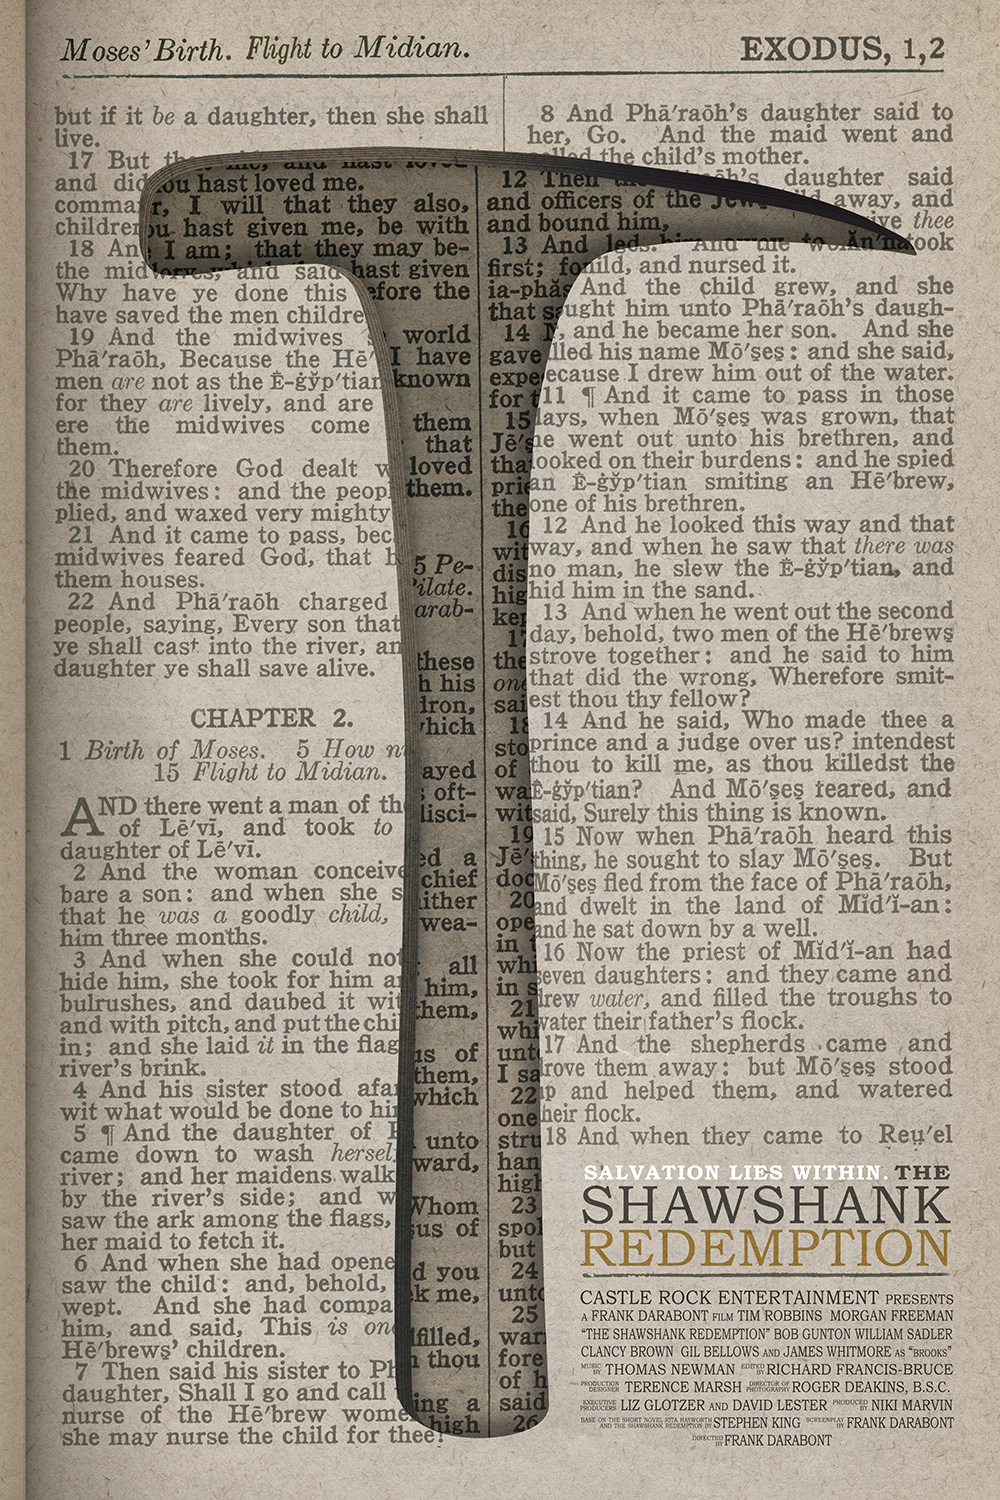 Andy Dufresne's Bible that he hid his rock hammer in from the fantastic film, Shawshank Redemption.